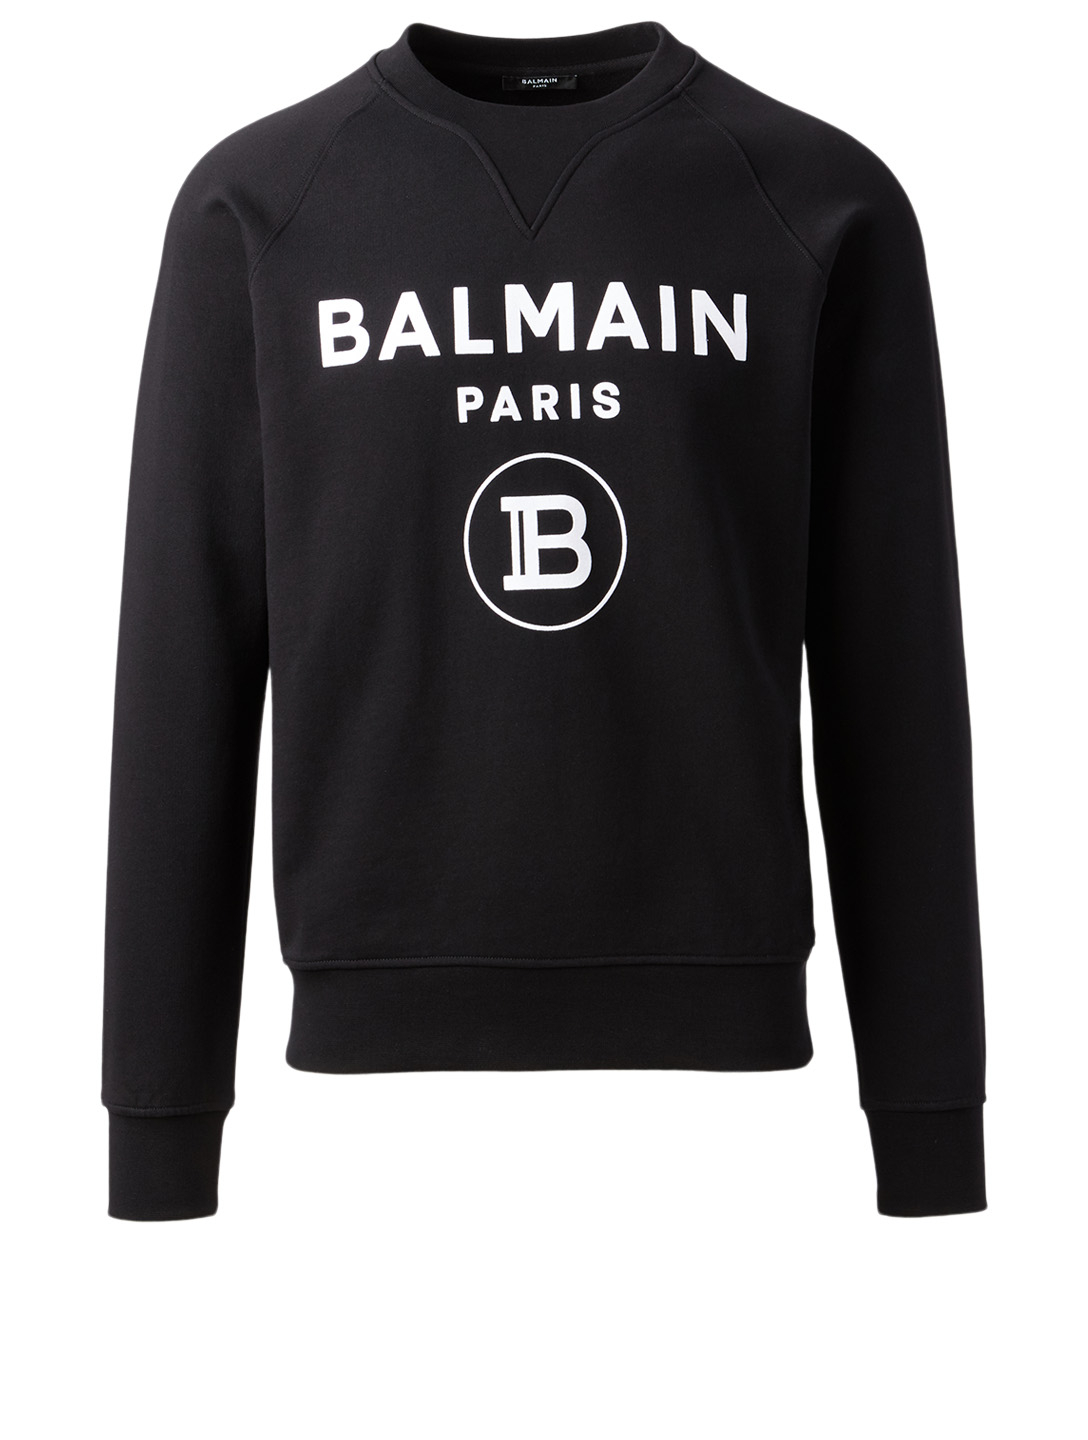 BALMAIN Cotton Flock Logo Sweatshirt Men's Black